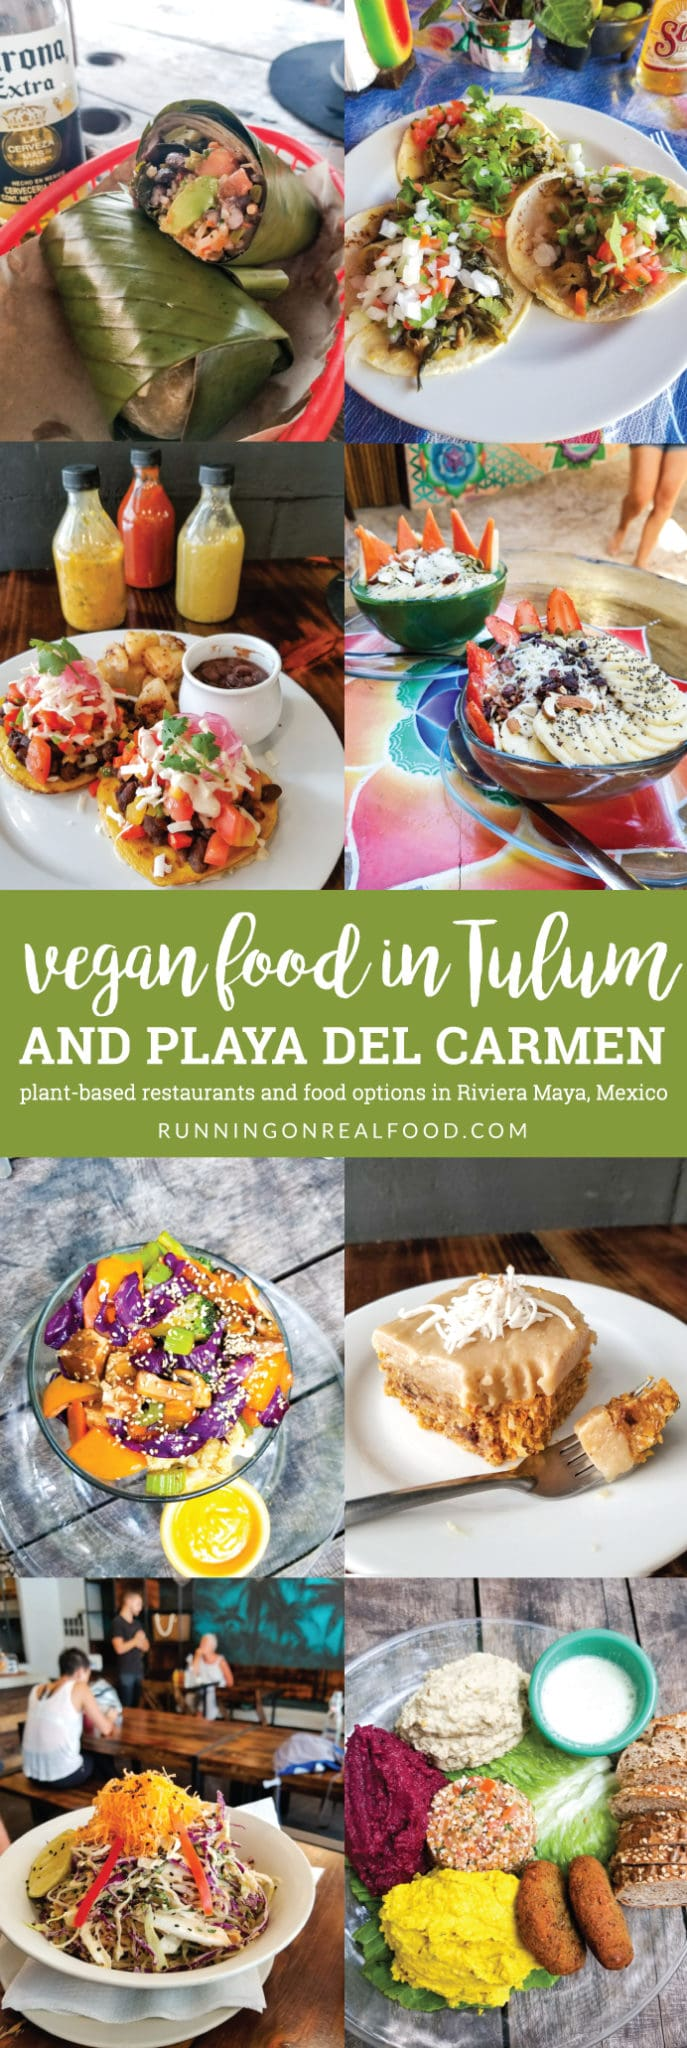 The best vegan restaurants and plant-based food options in the Riviera Maya, Quintana Roo, Mexico including Tulum, Playa del Carmen and Akumal.